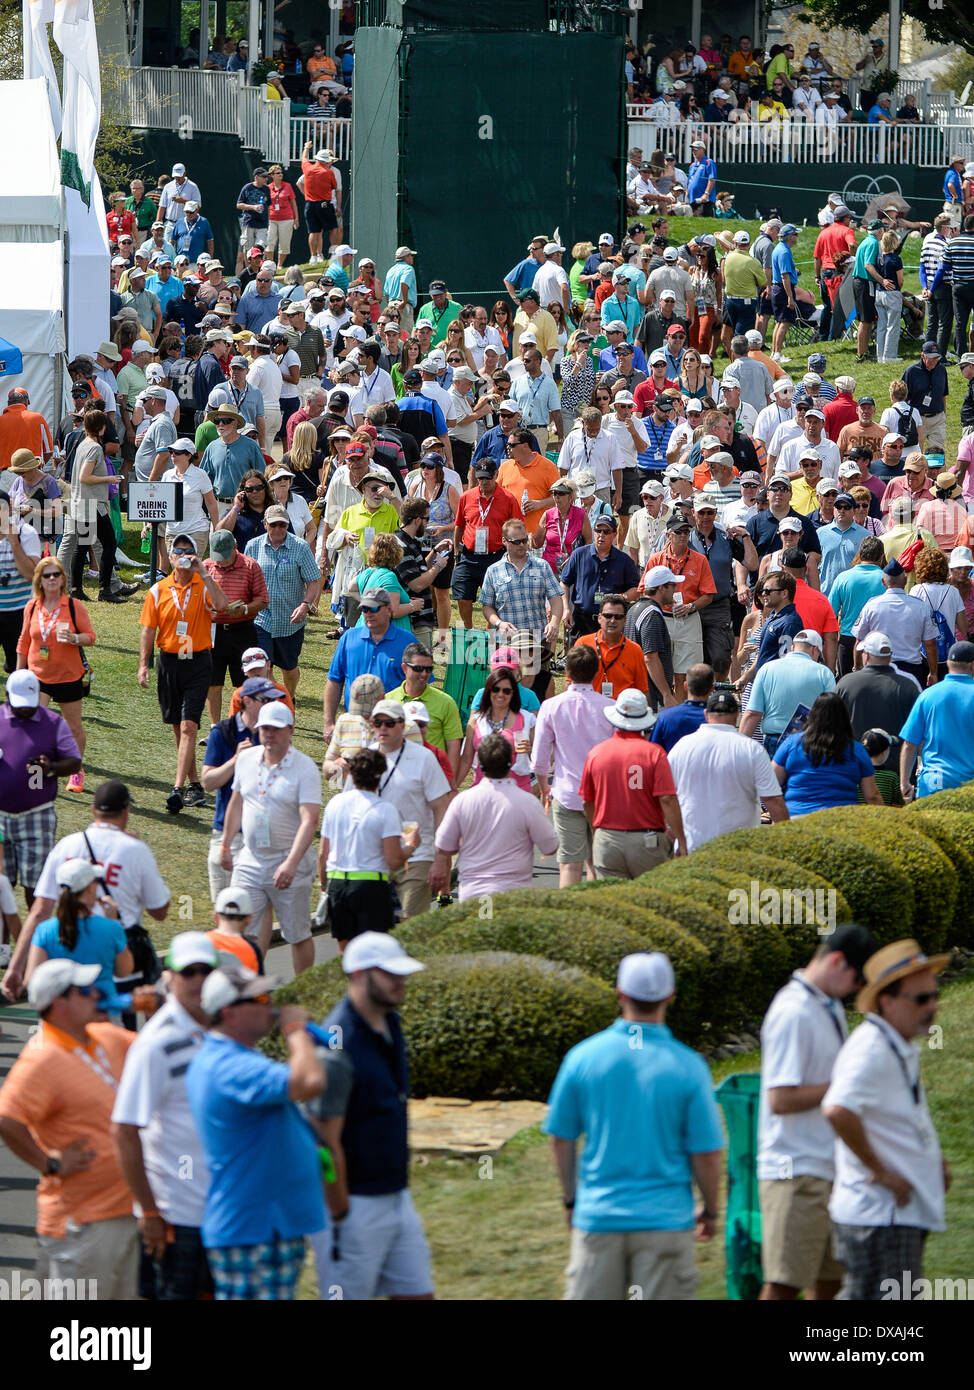 21st March 2014. Crowds at Bay Hill during second round golf action of the Arnold Palmer Invitational presented by Mastercard held at Arnold Palmer's Bay ...